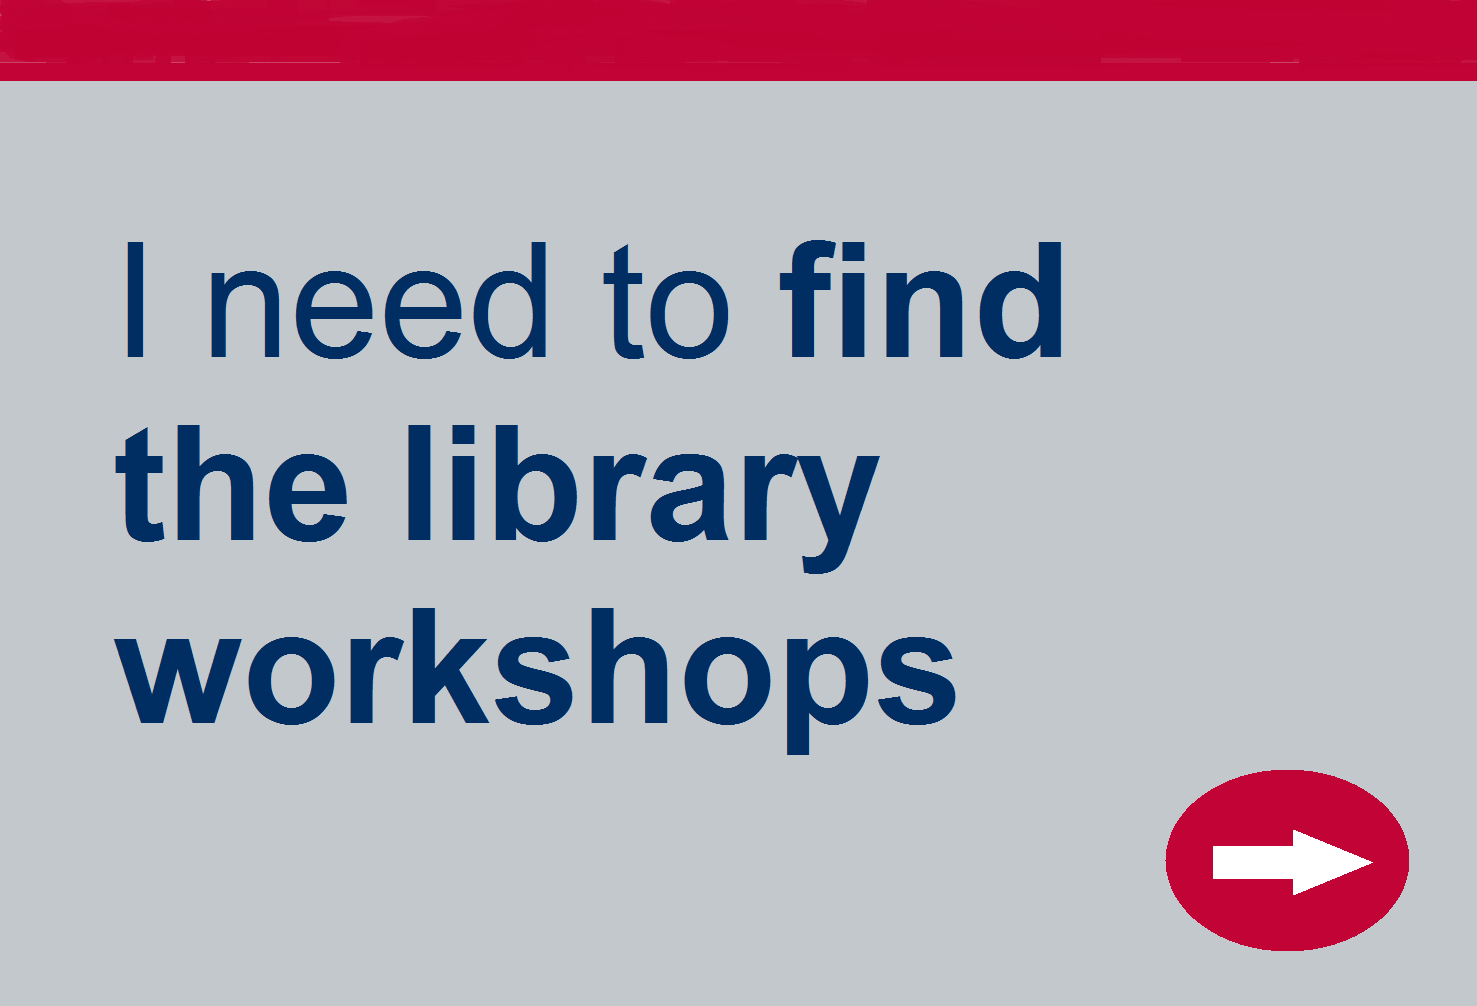 Need to find the library workshops